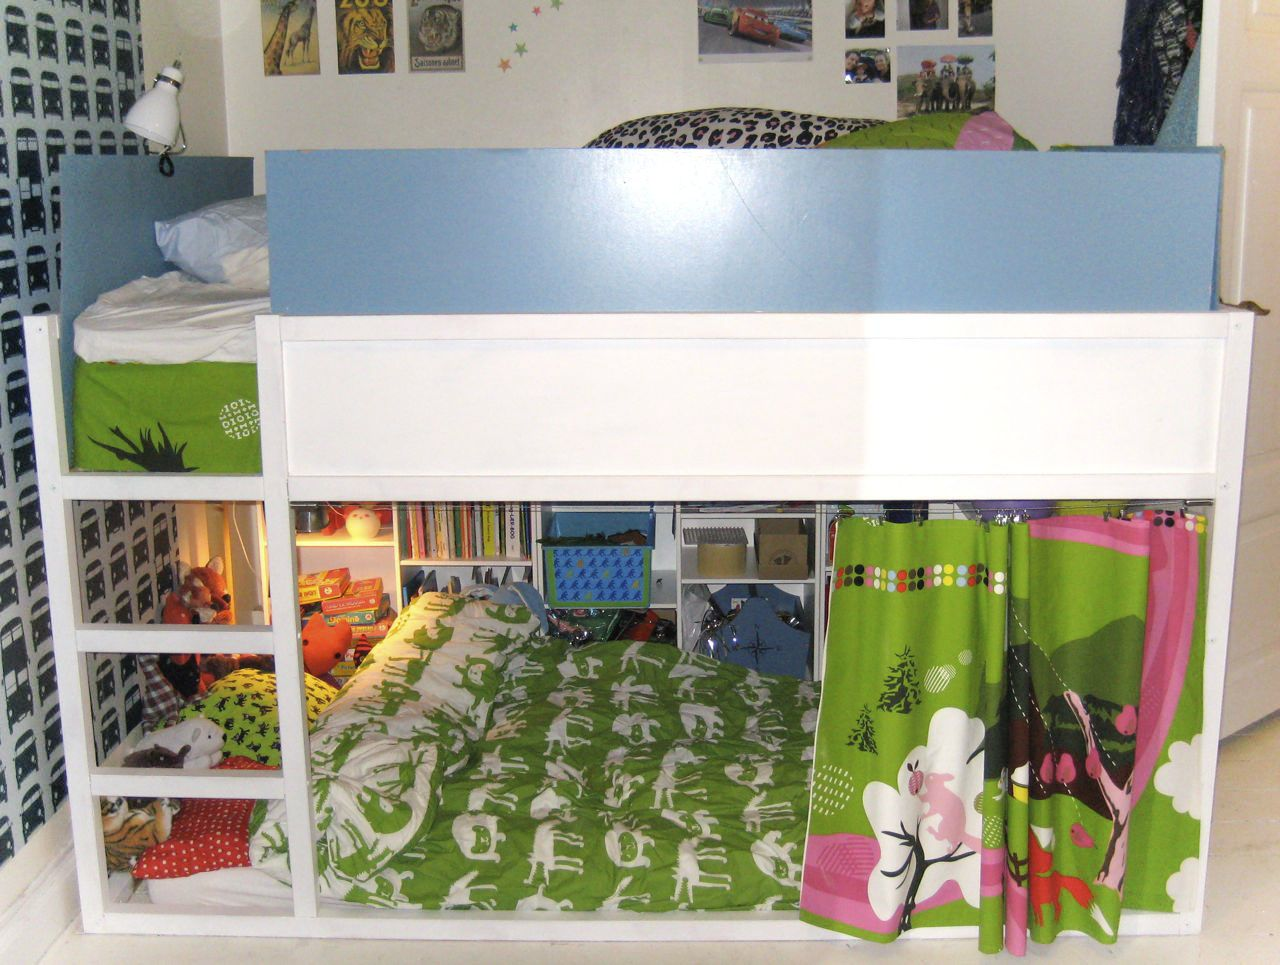 kura ikea on pinterest ikea kura bed kura bed and ikea kura